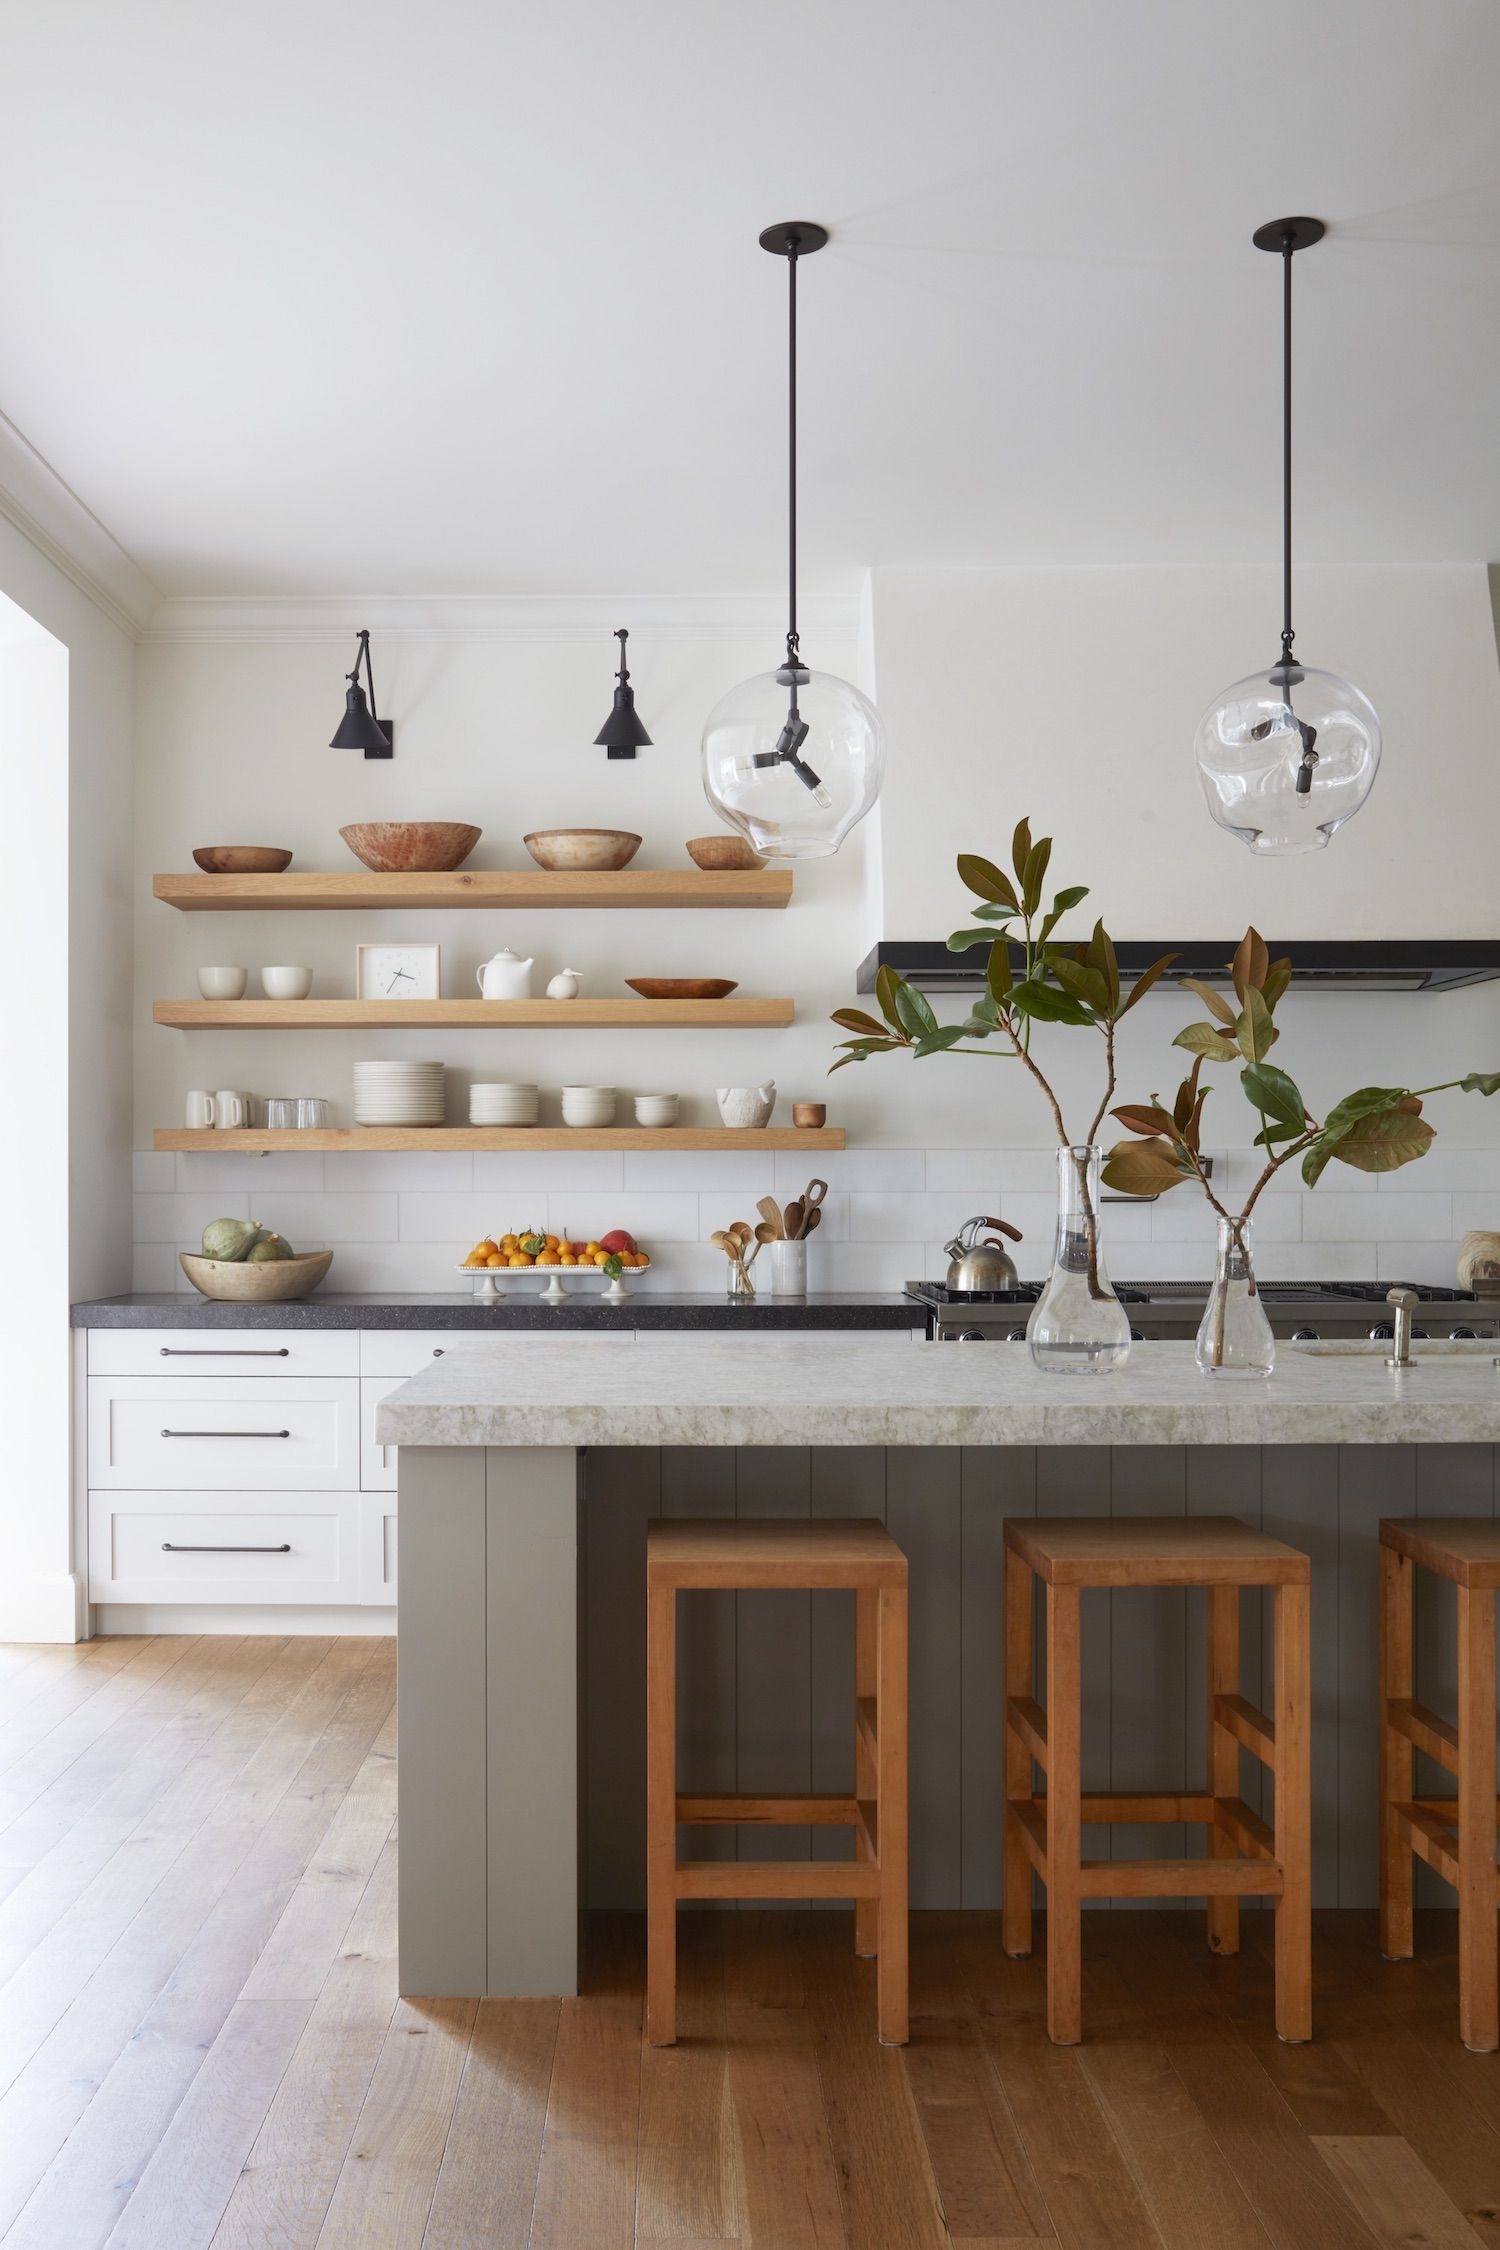 There Is A Great Way For You To Understand How You Can Make The Best Of Your Home Decor Using Modern Kitchen Interiors Interior Design Kitchen Kitchen Interior